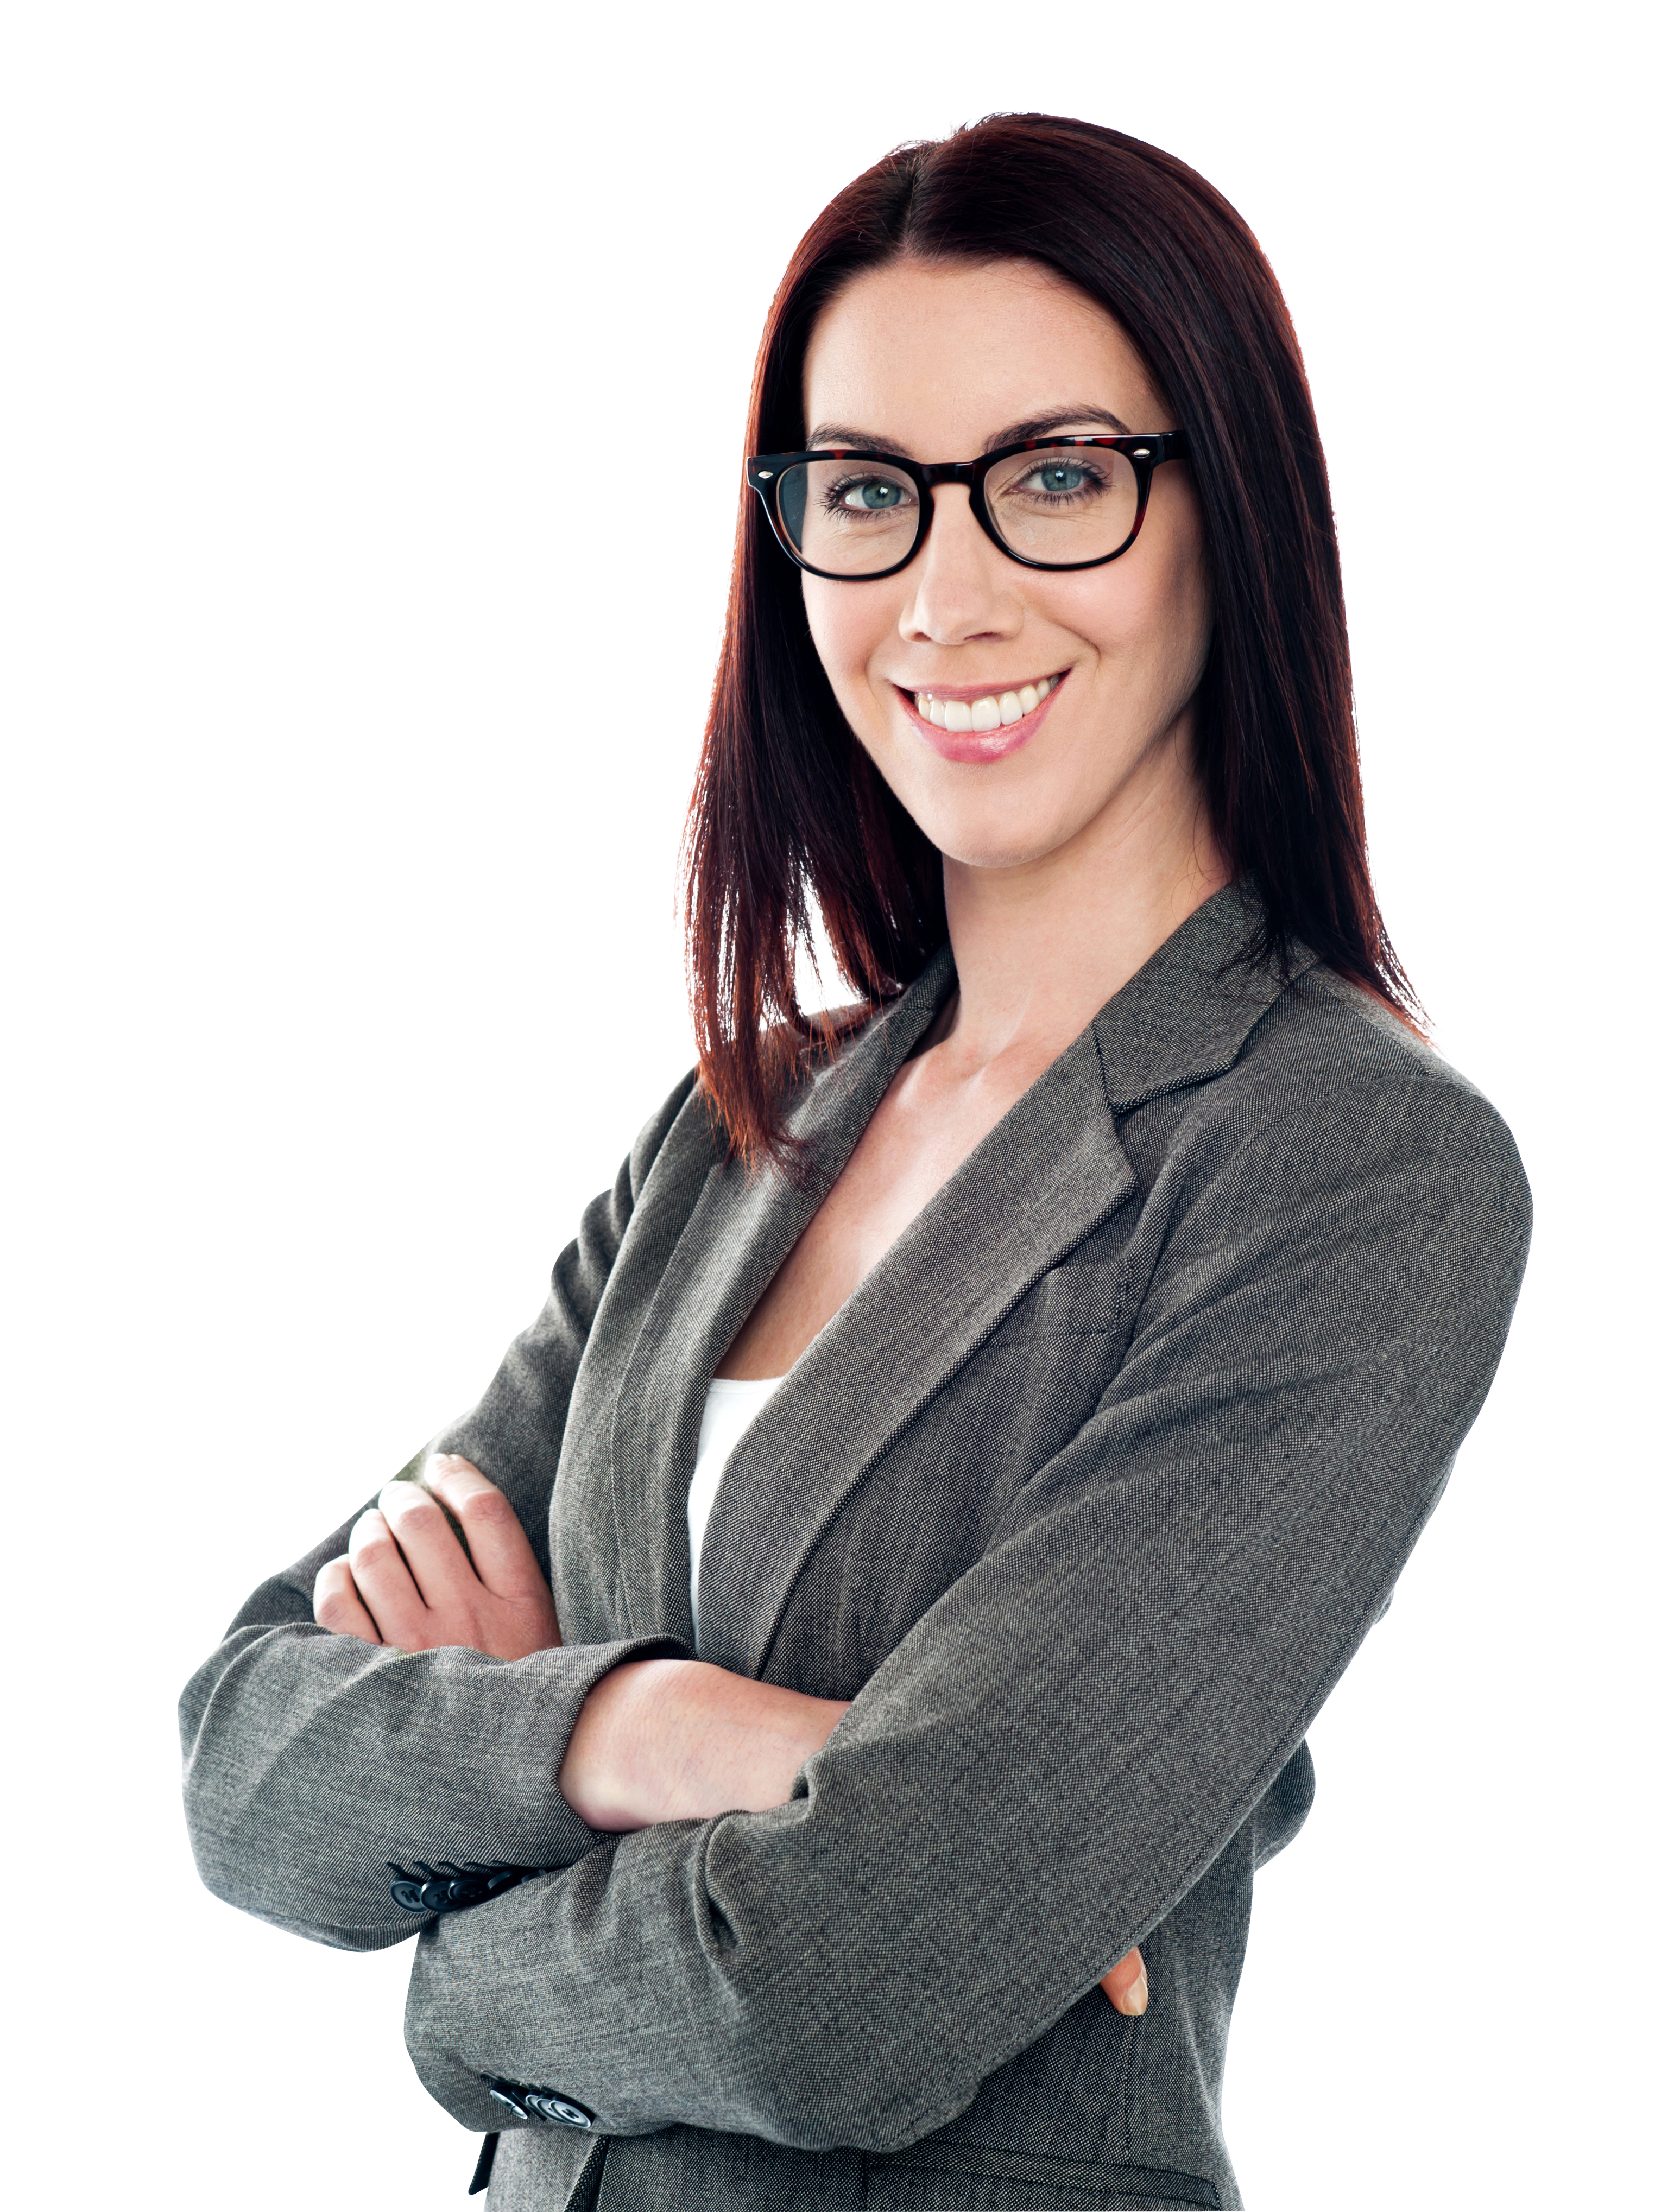 Specs Girl PNG Image